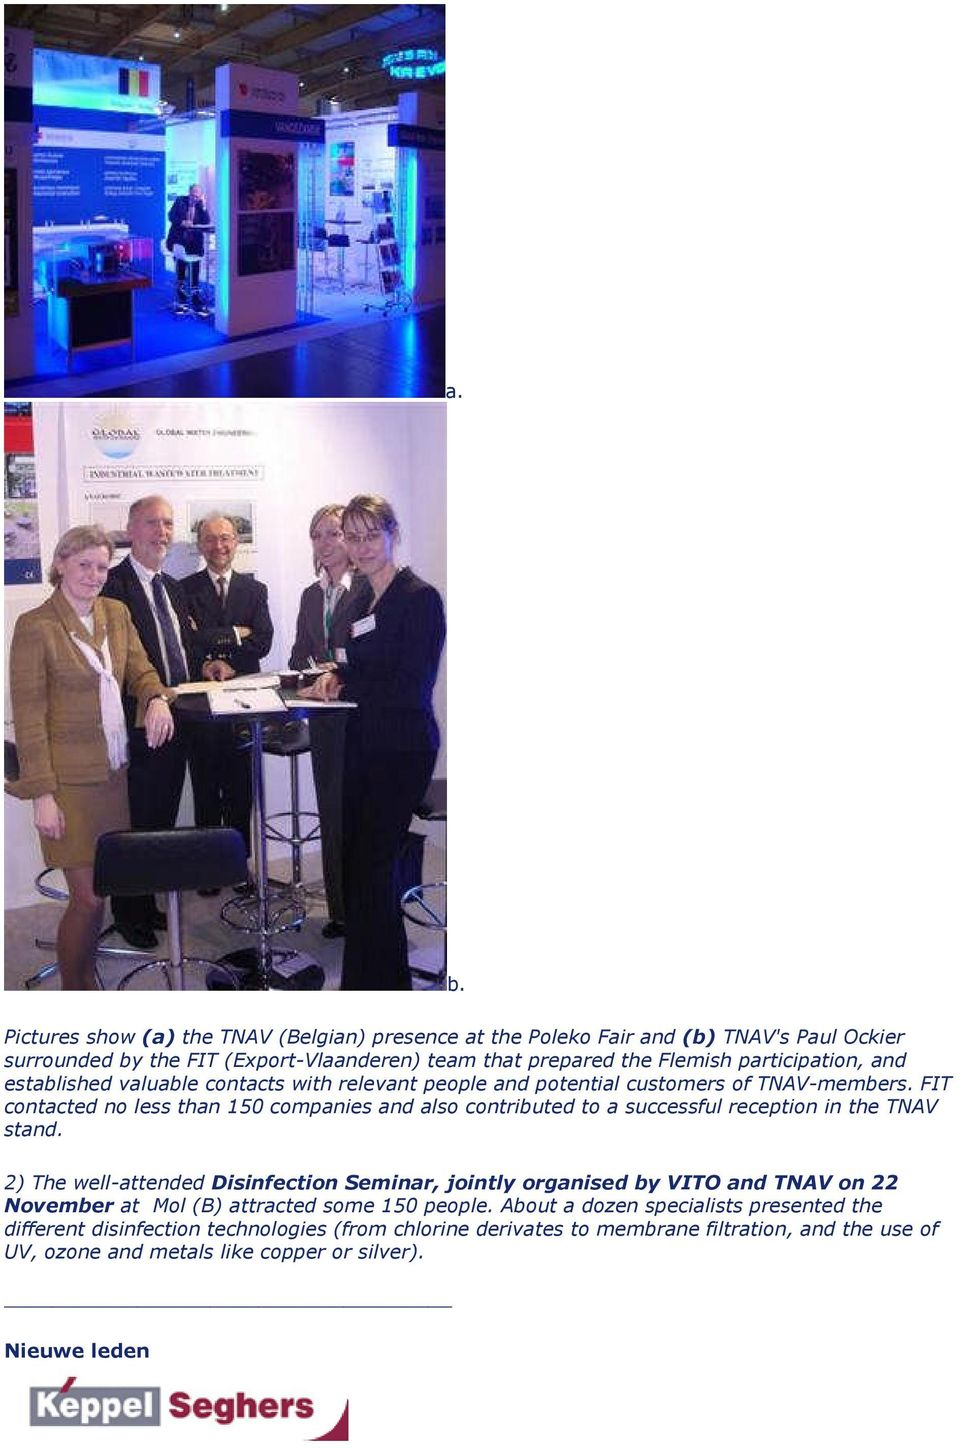 FIT contacted no less than 150 companies and also contributed to a successful reception in the TNAV stand.